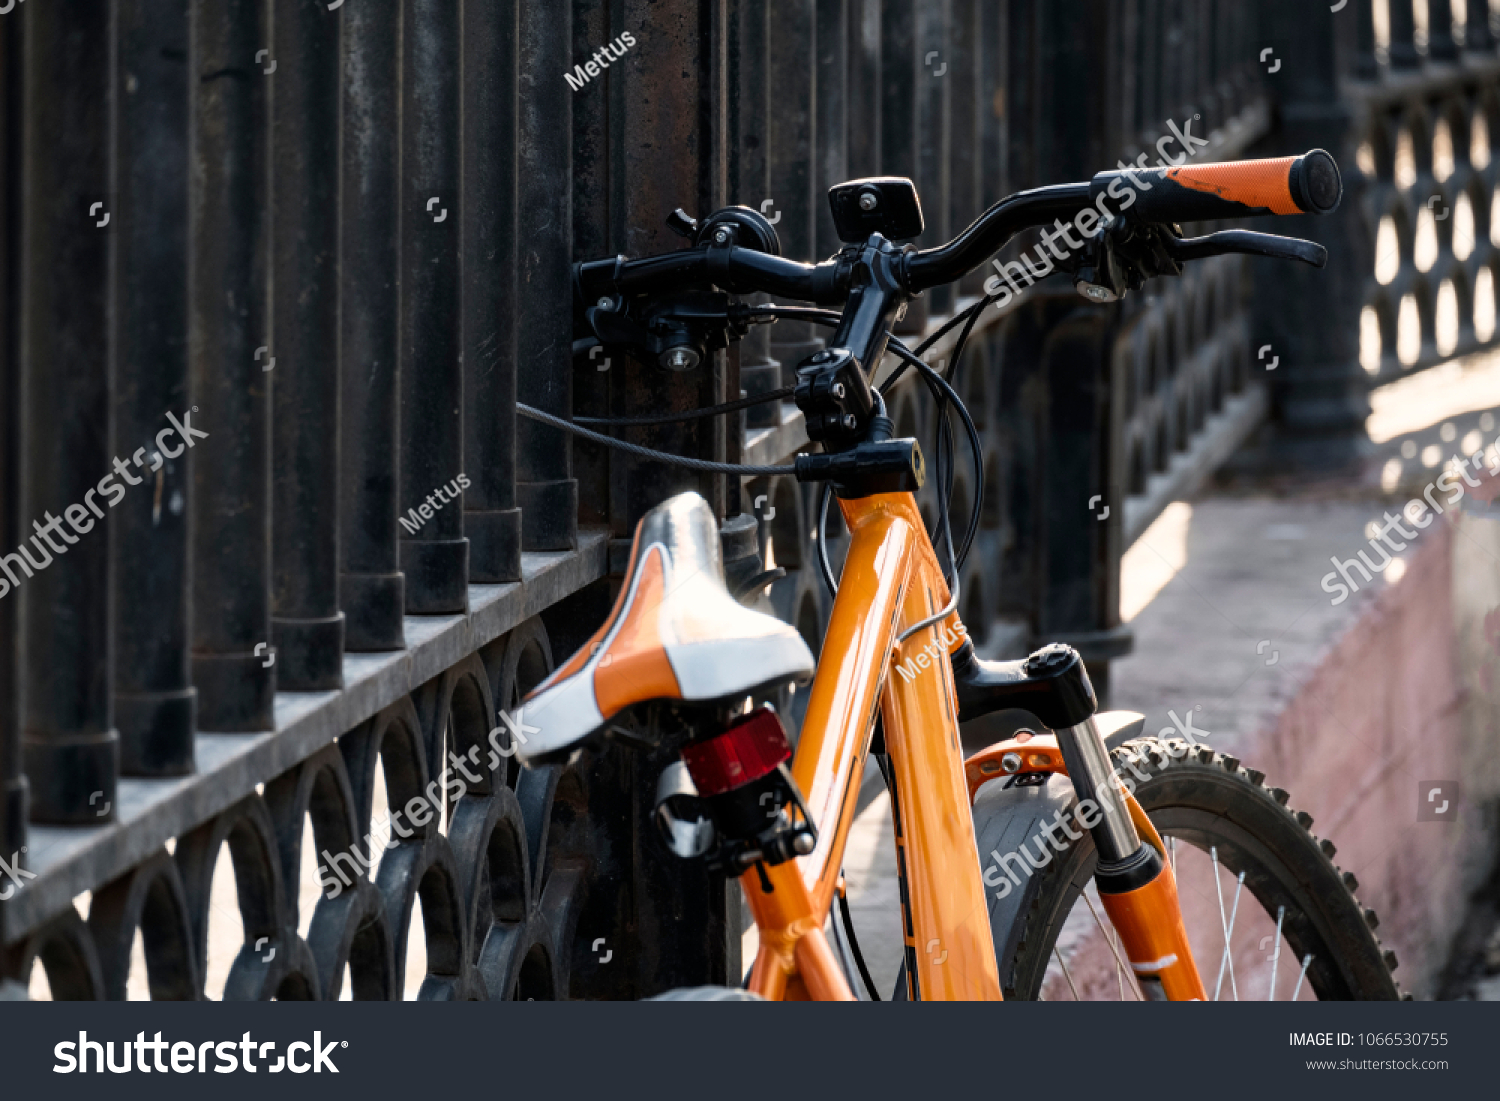 stock-photo-angle-view-of-modern-style-m